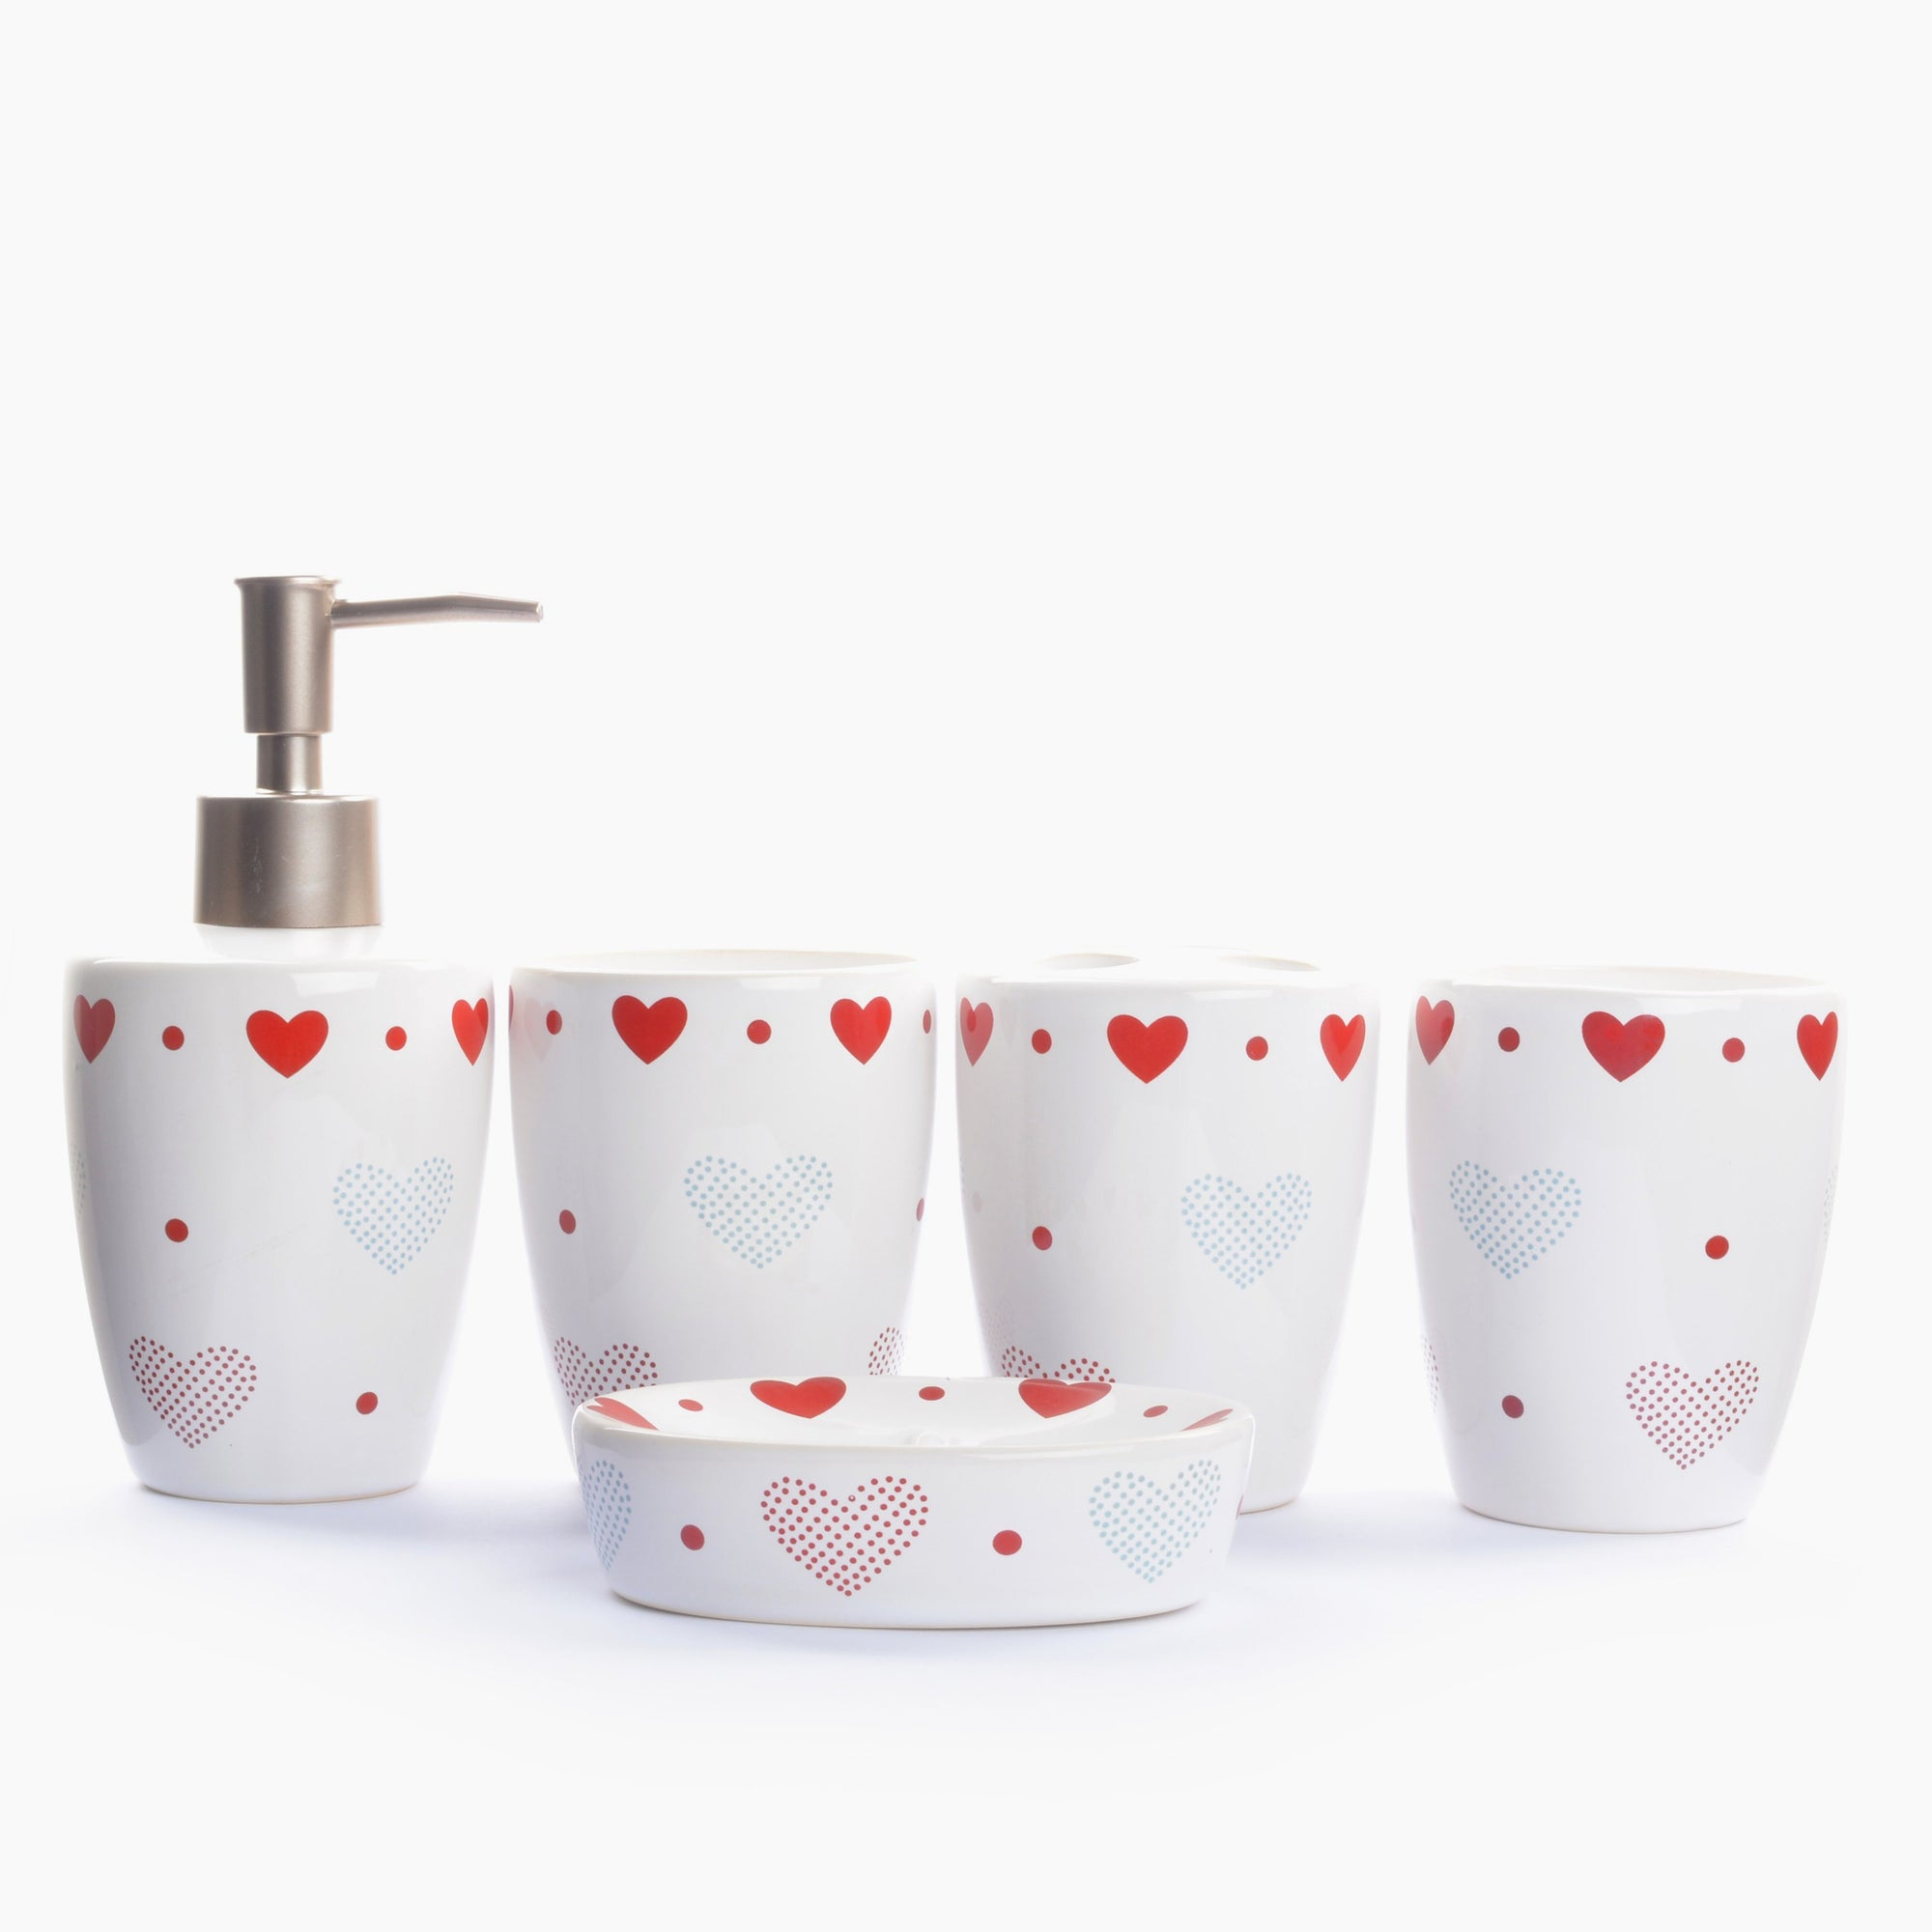 Hearts Printed Ceramic Bathroom Set (5 Pieces)